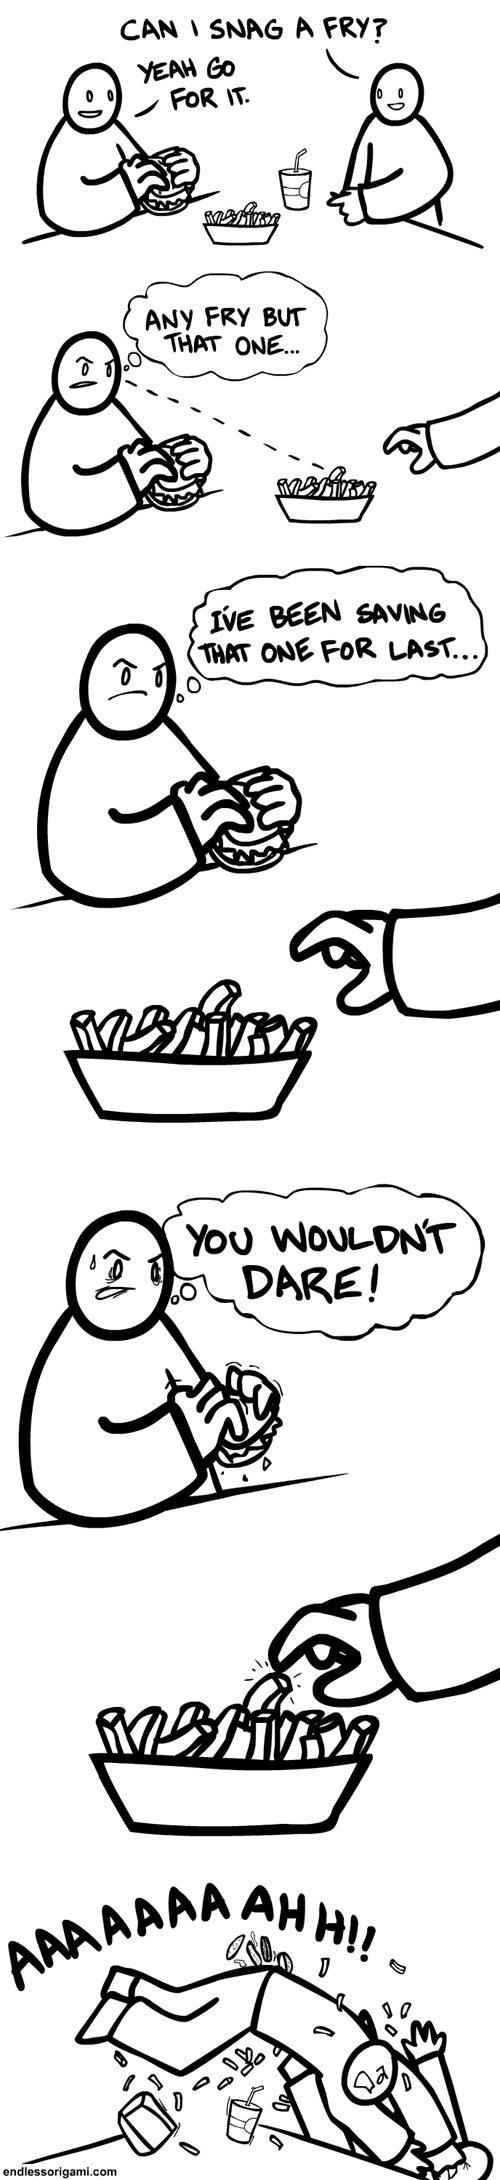 food,fries,sharing,web comics